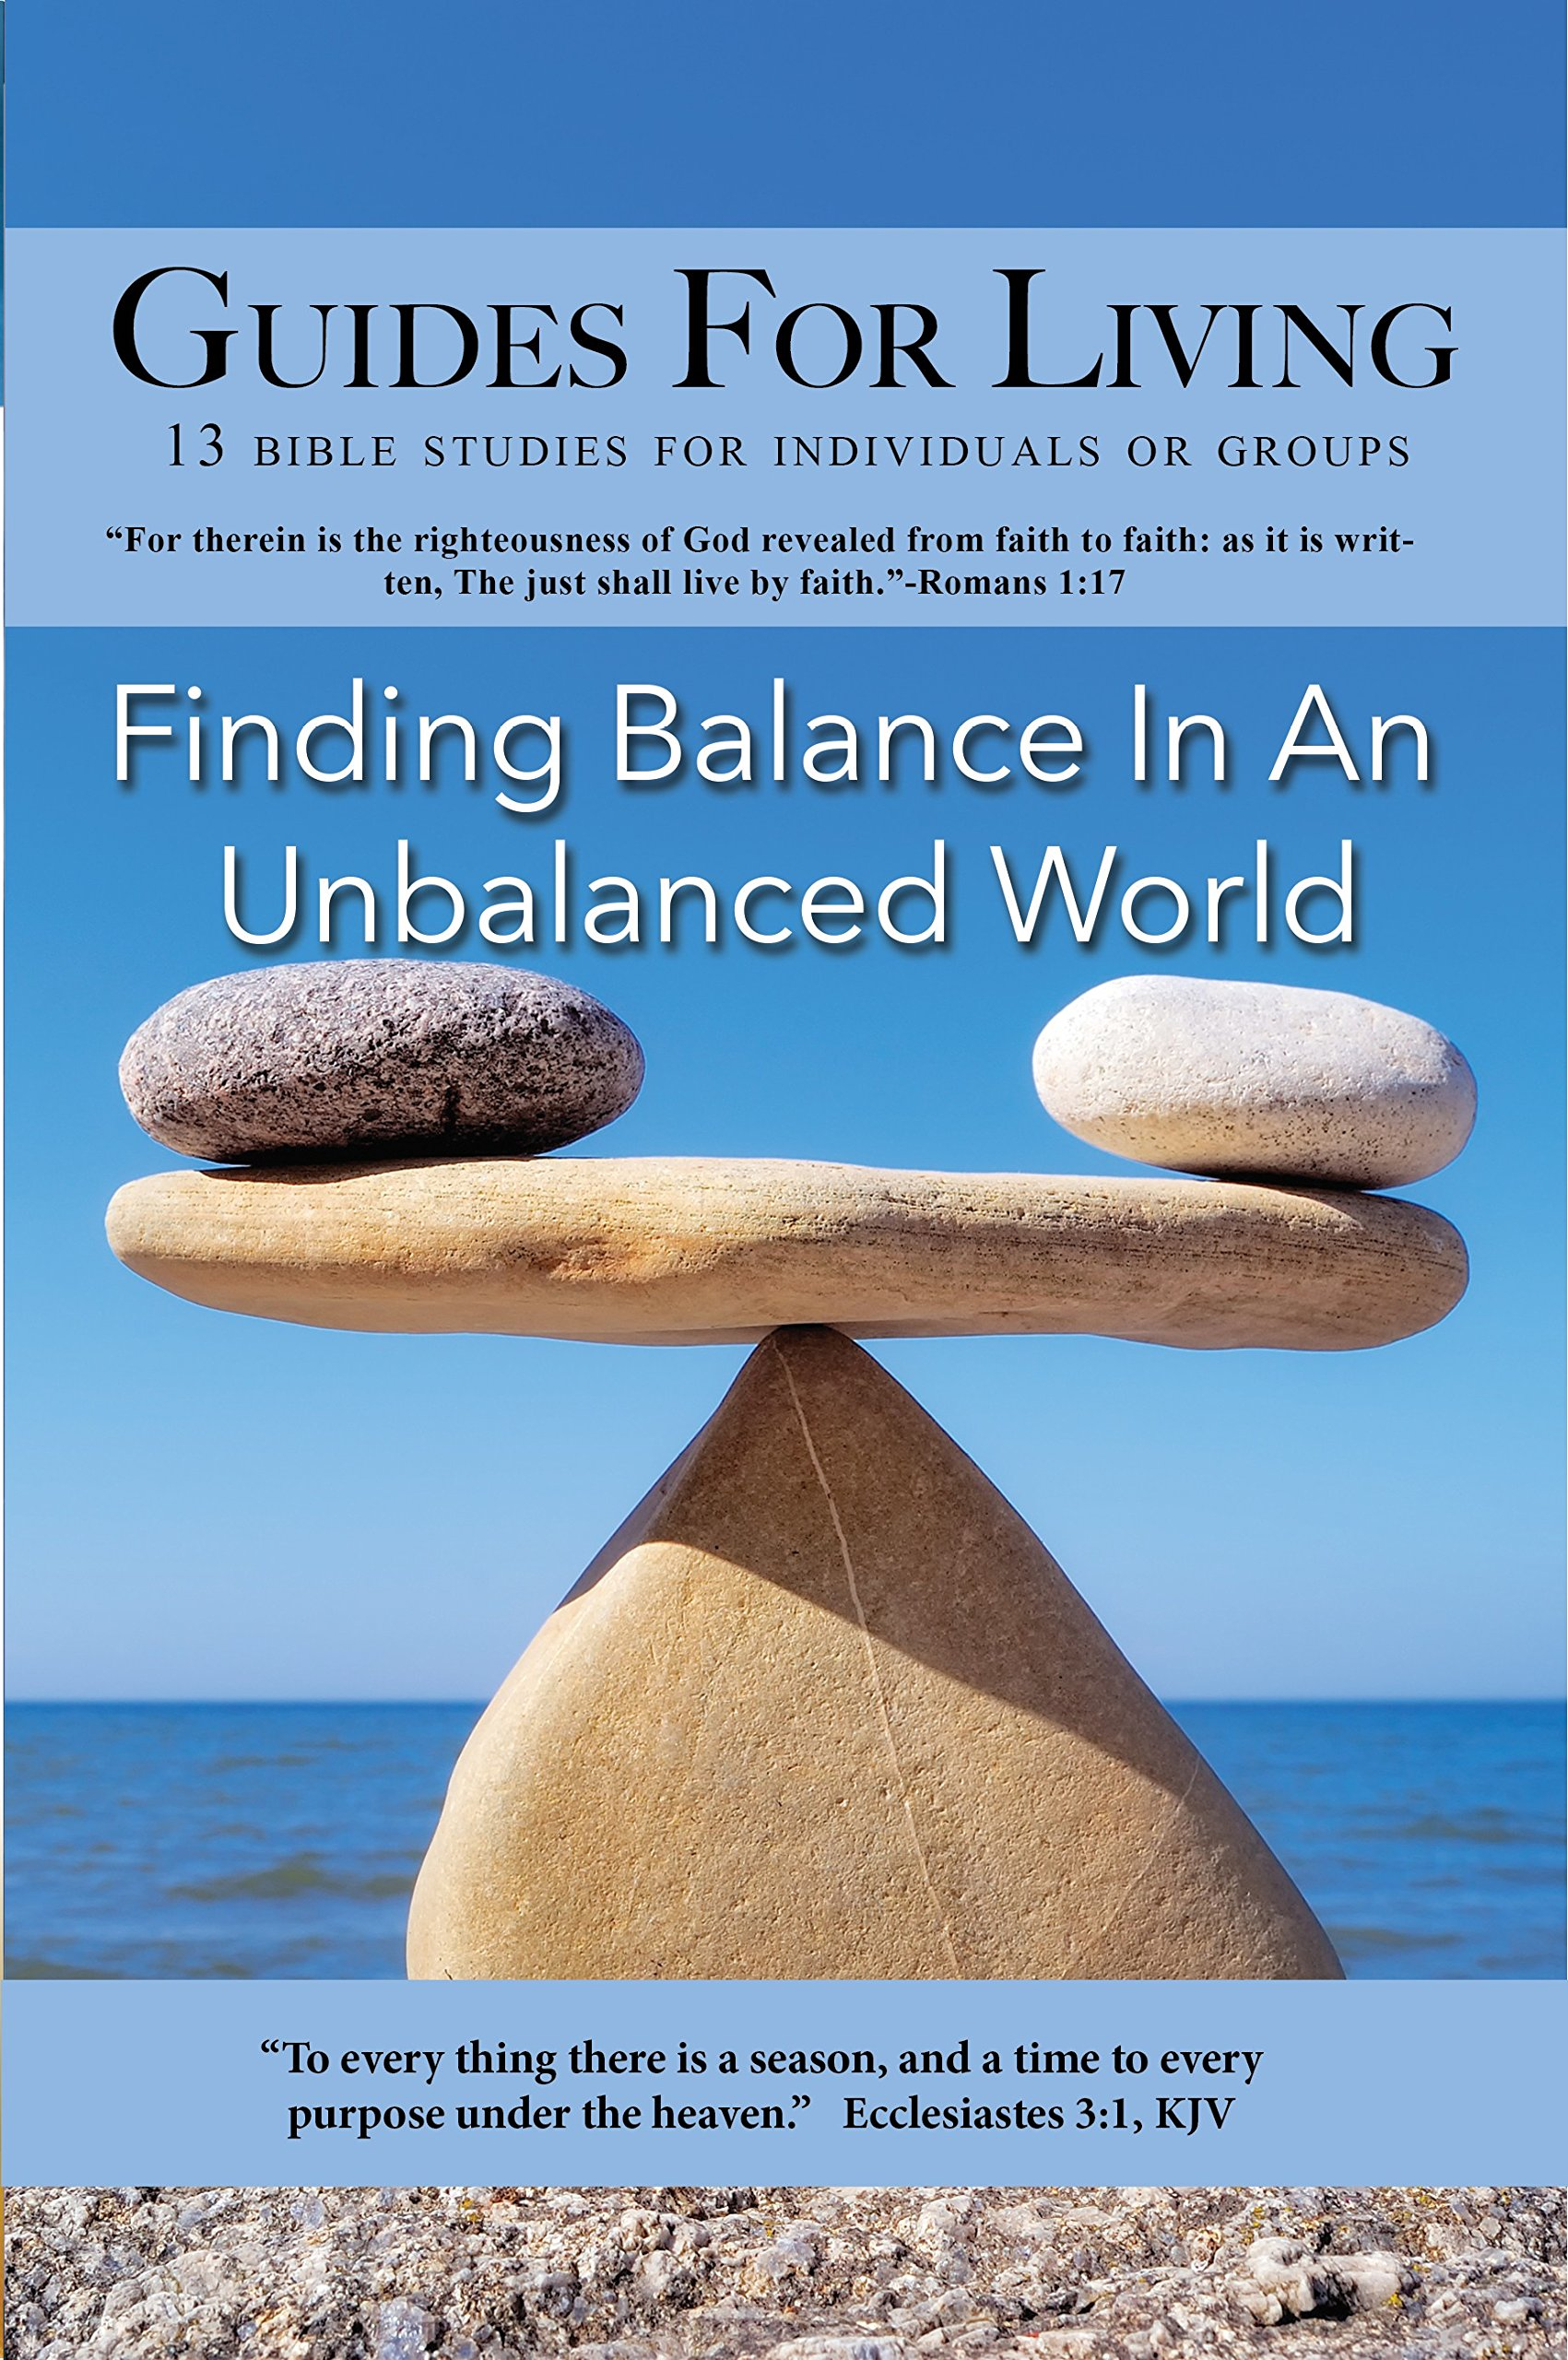 Guides for Living: Finding Balance In An Unbalanced World pdf epub